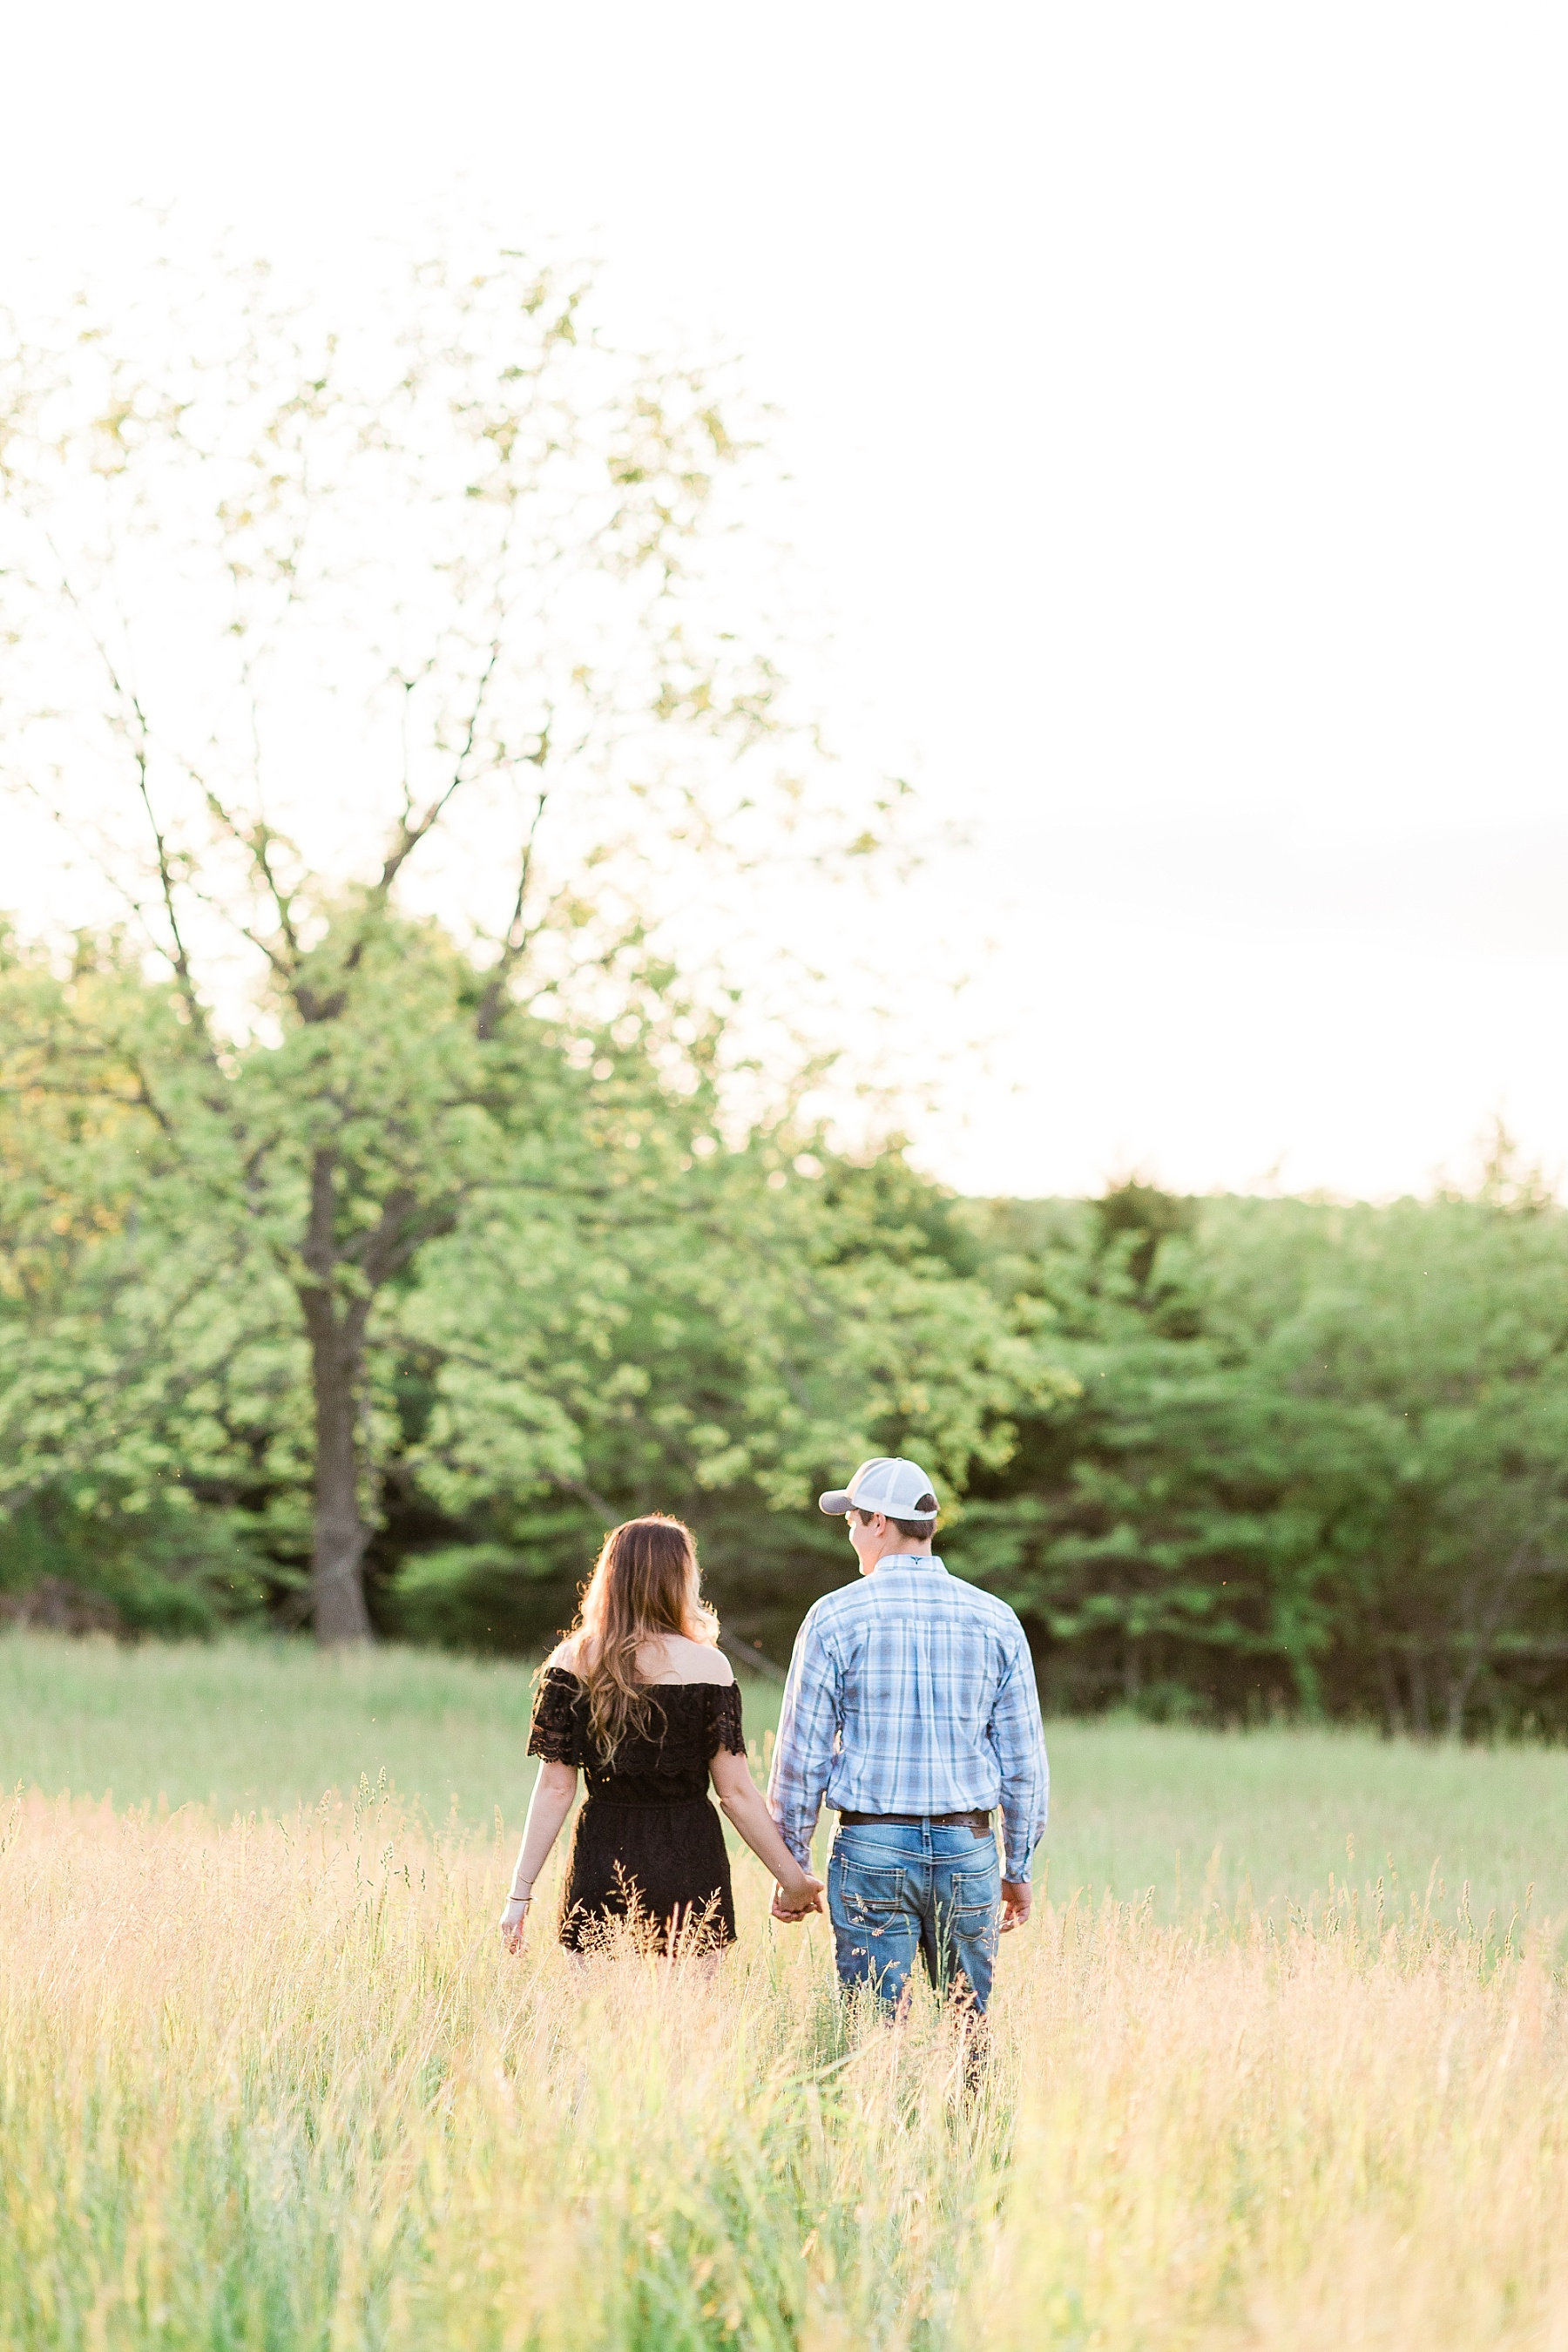 Spring Engagement Session in Open Field at Sunset by Kelsi Kliethermes Photography Best Missouri and Maui Wedding Photographer_0009.jpg